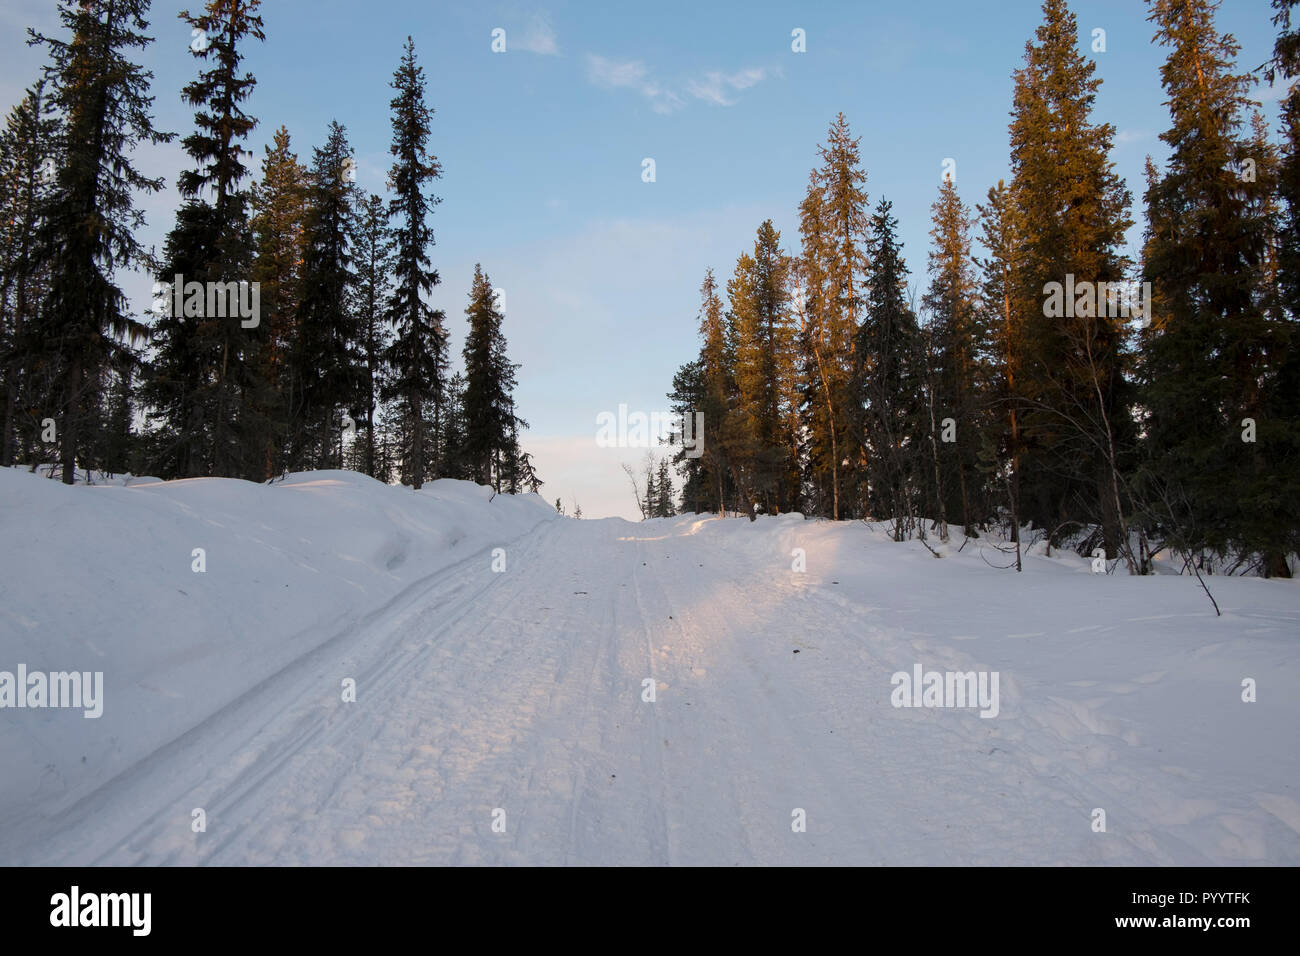 Dog sled path and road near Kituna, Sweden, among the evergreen trees in winter during the winter solstice. - Stock Image